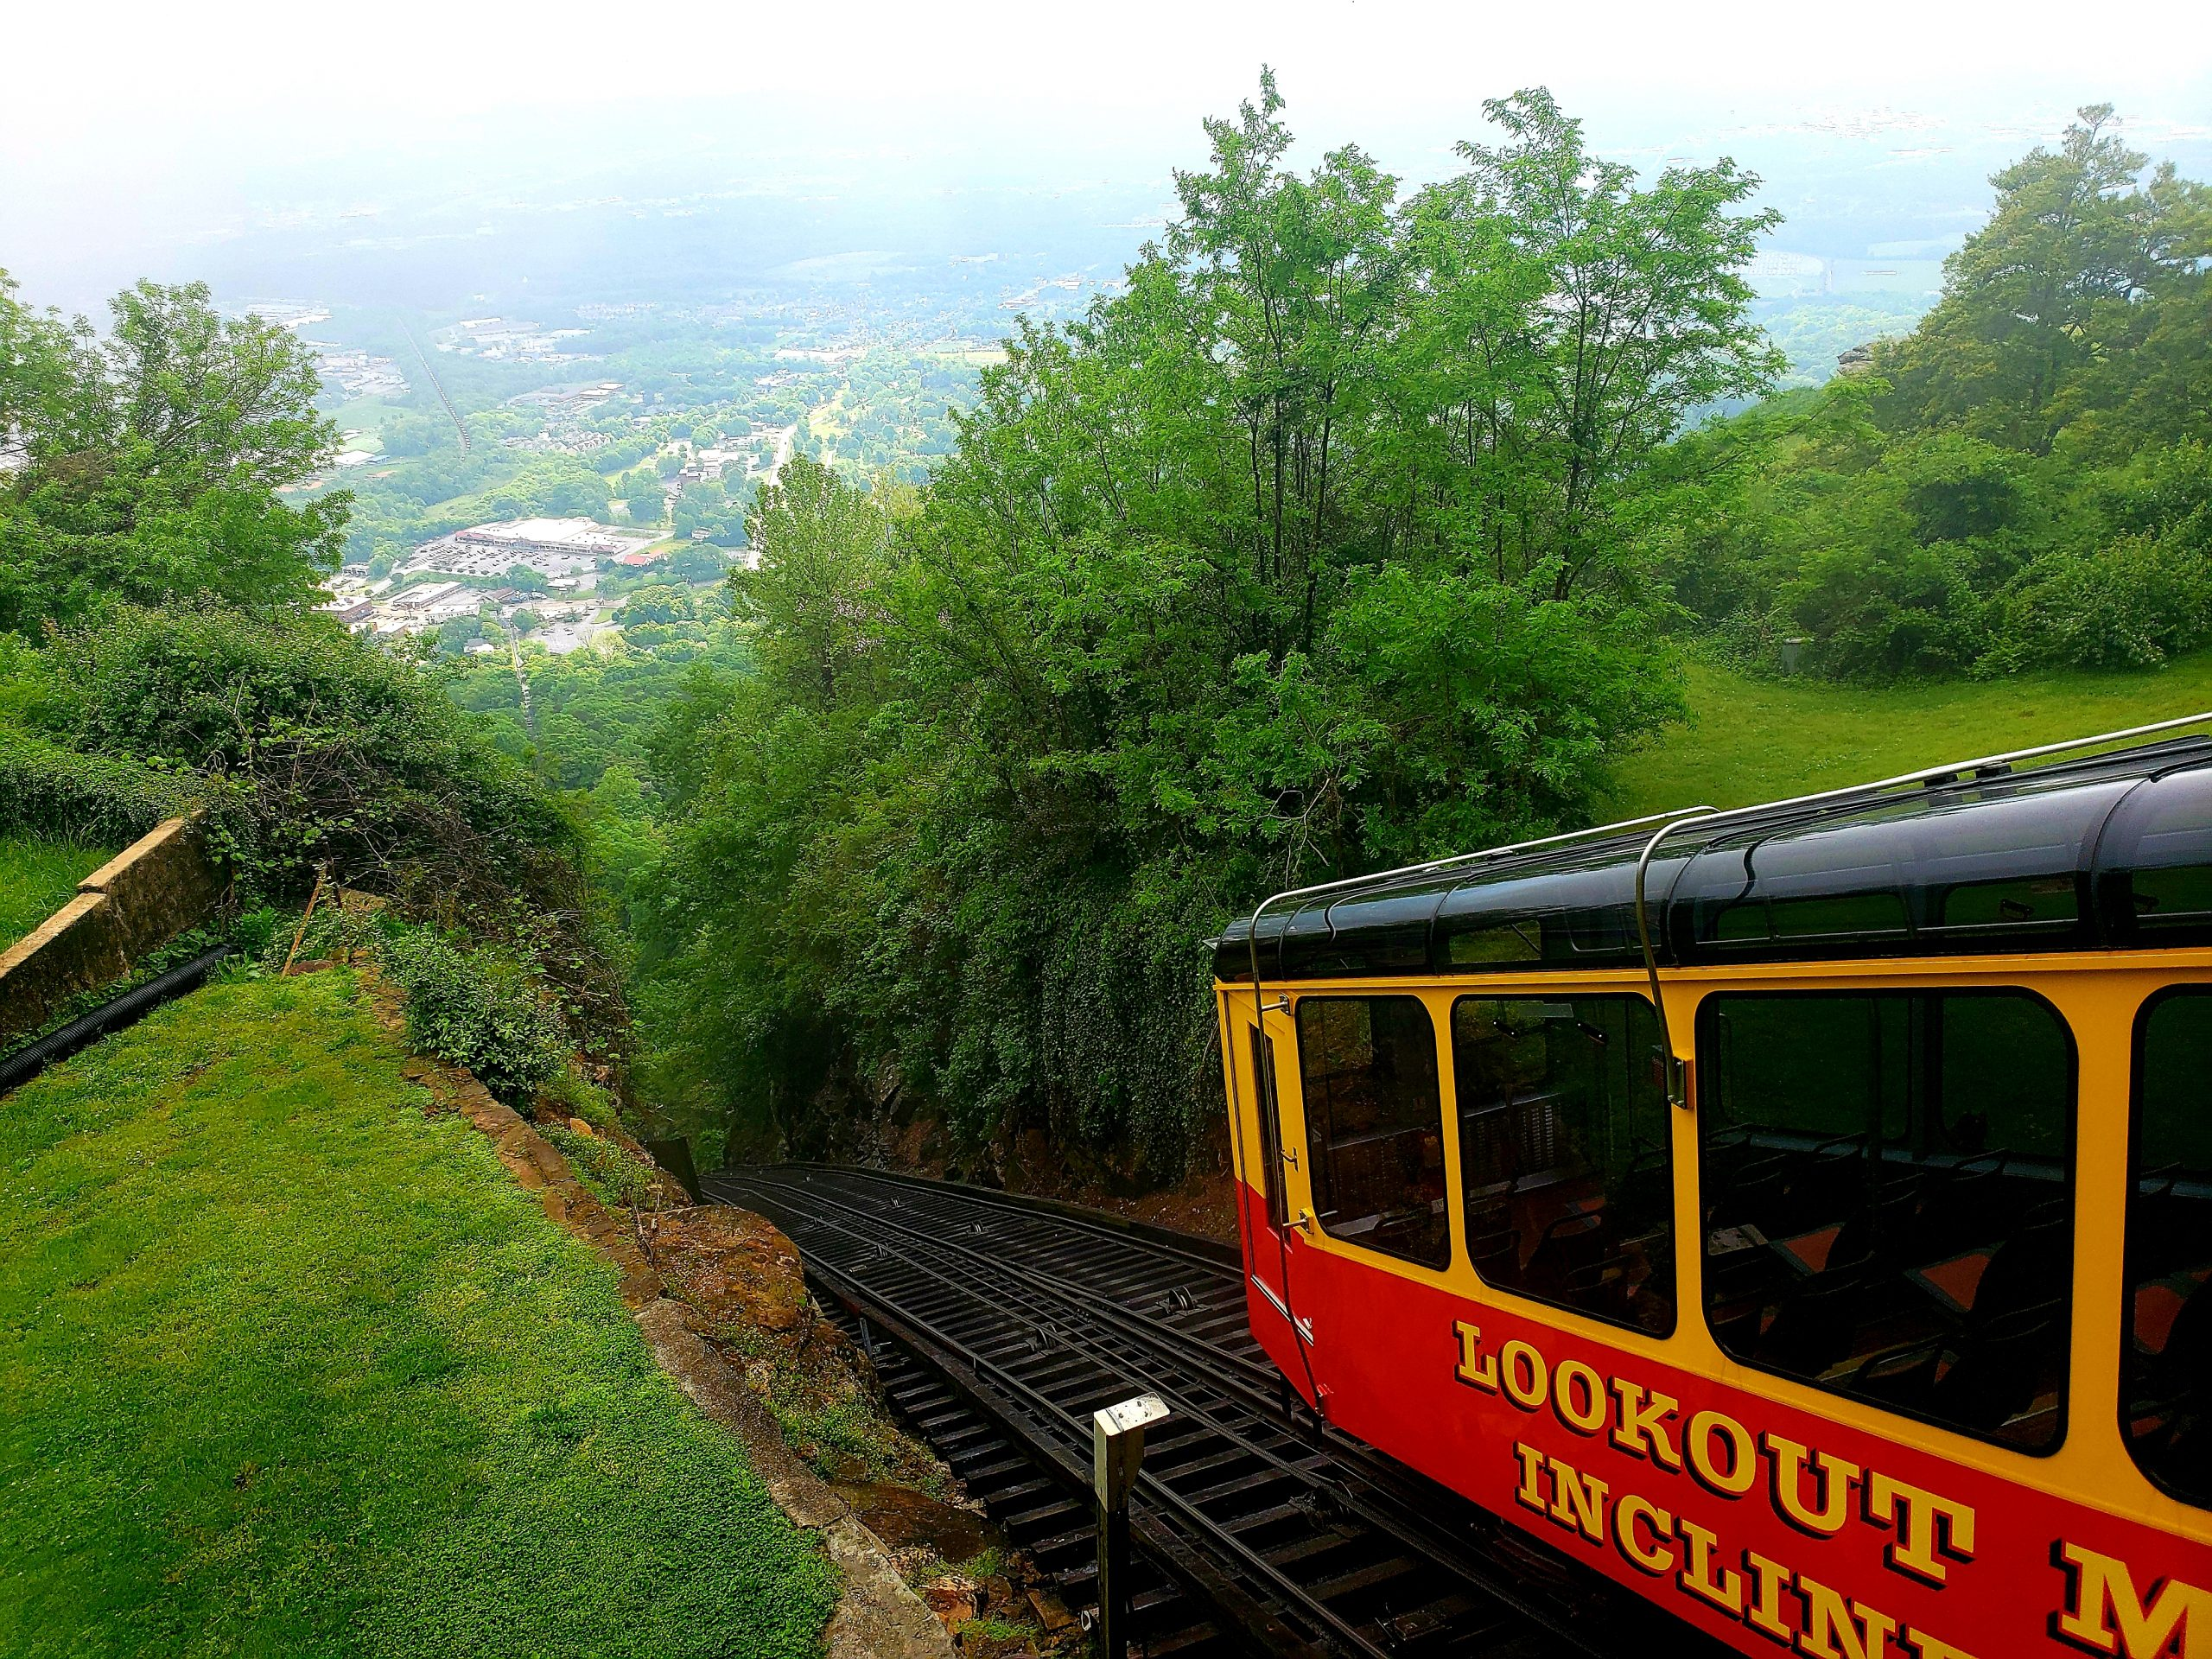 Lookout Mountain Incline Railway, Chattanooga, Tennessee (Photo Credit: Violet Sky)